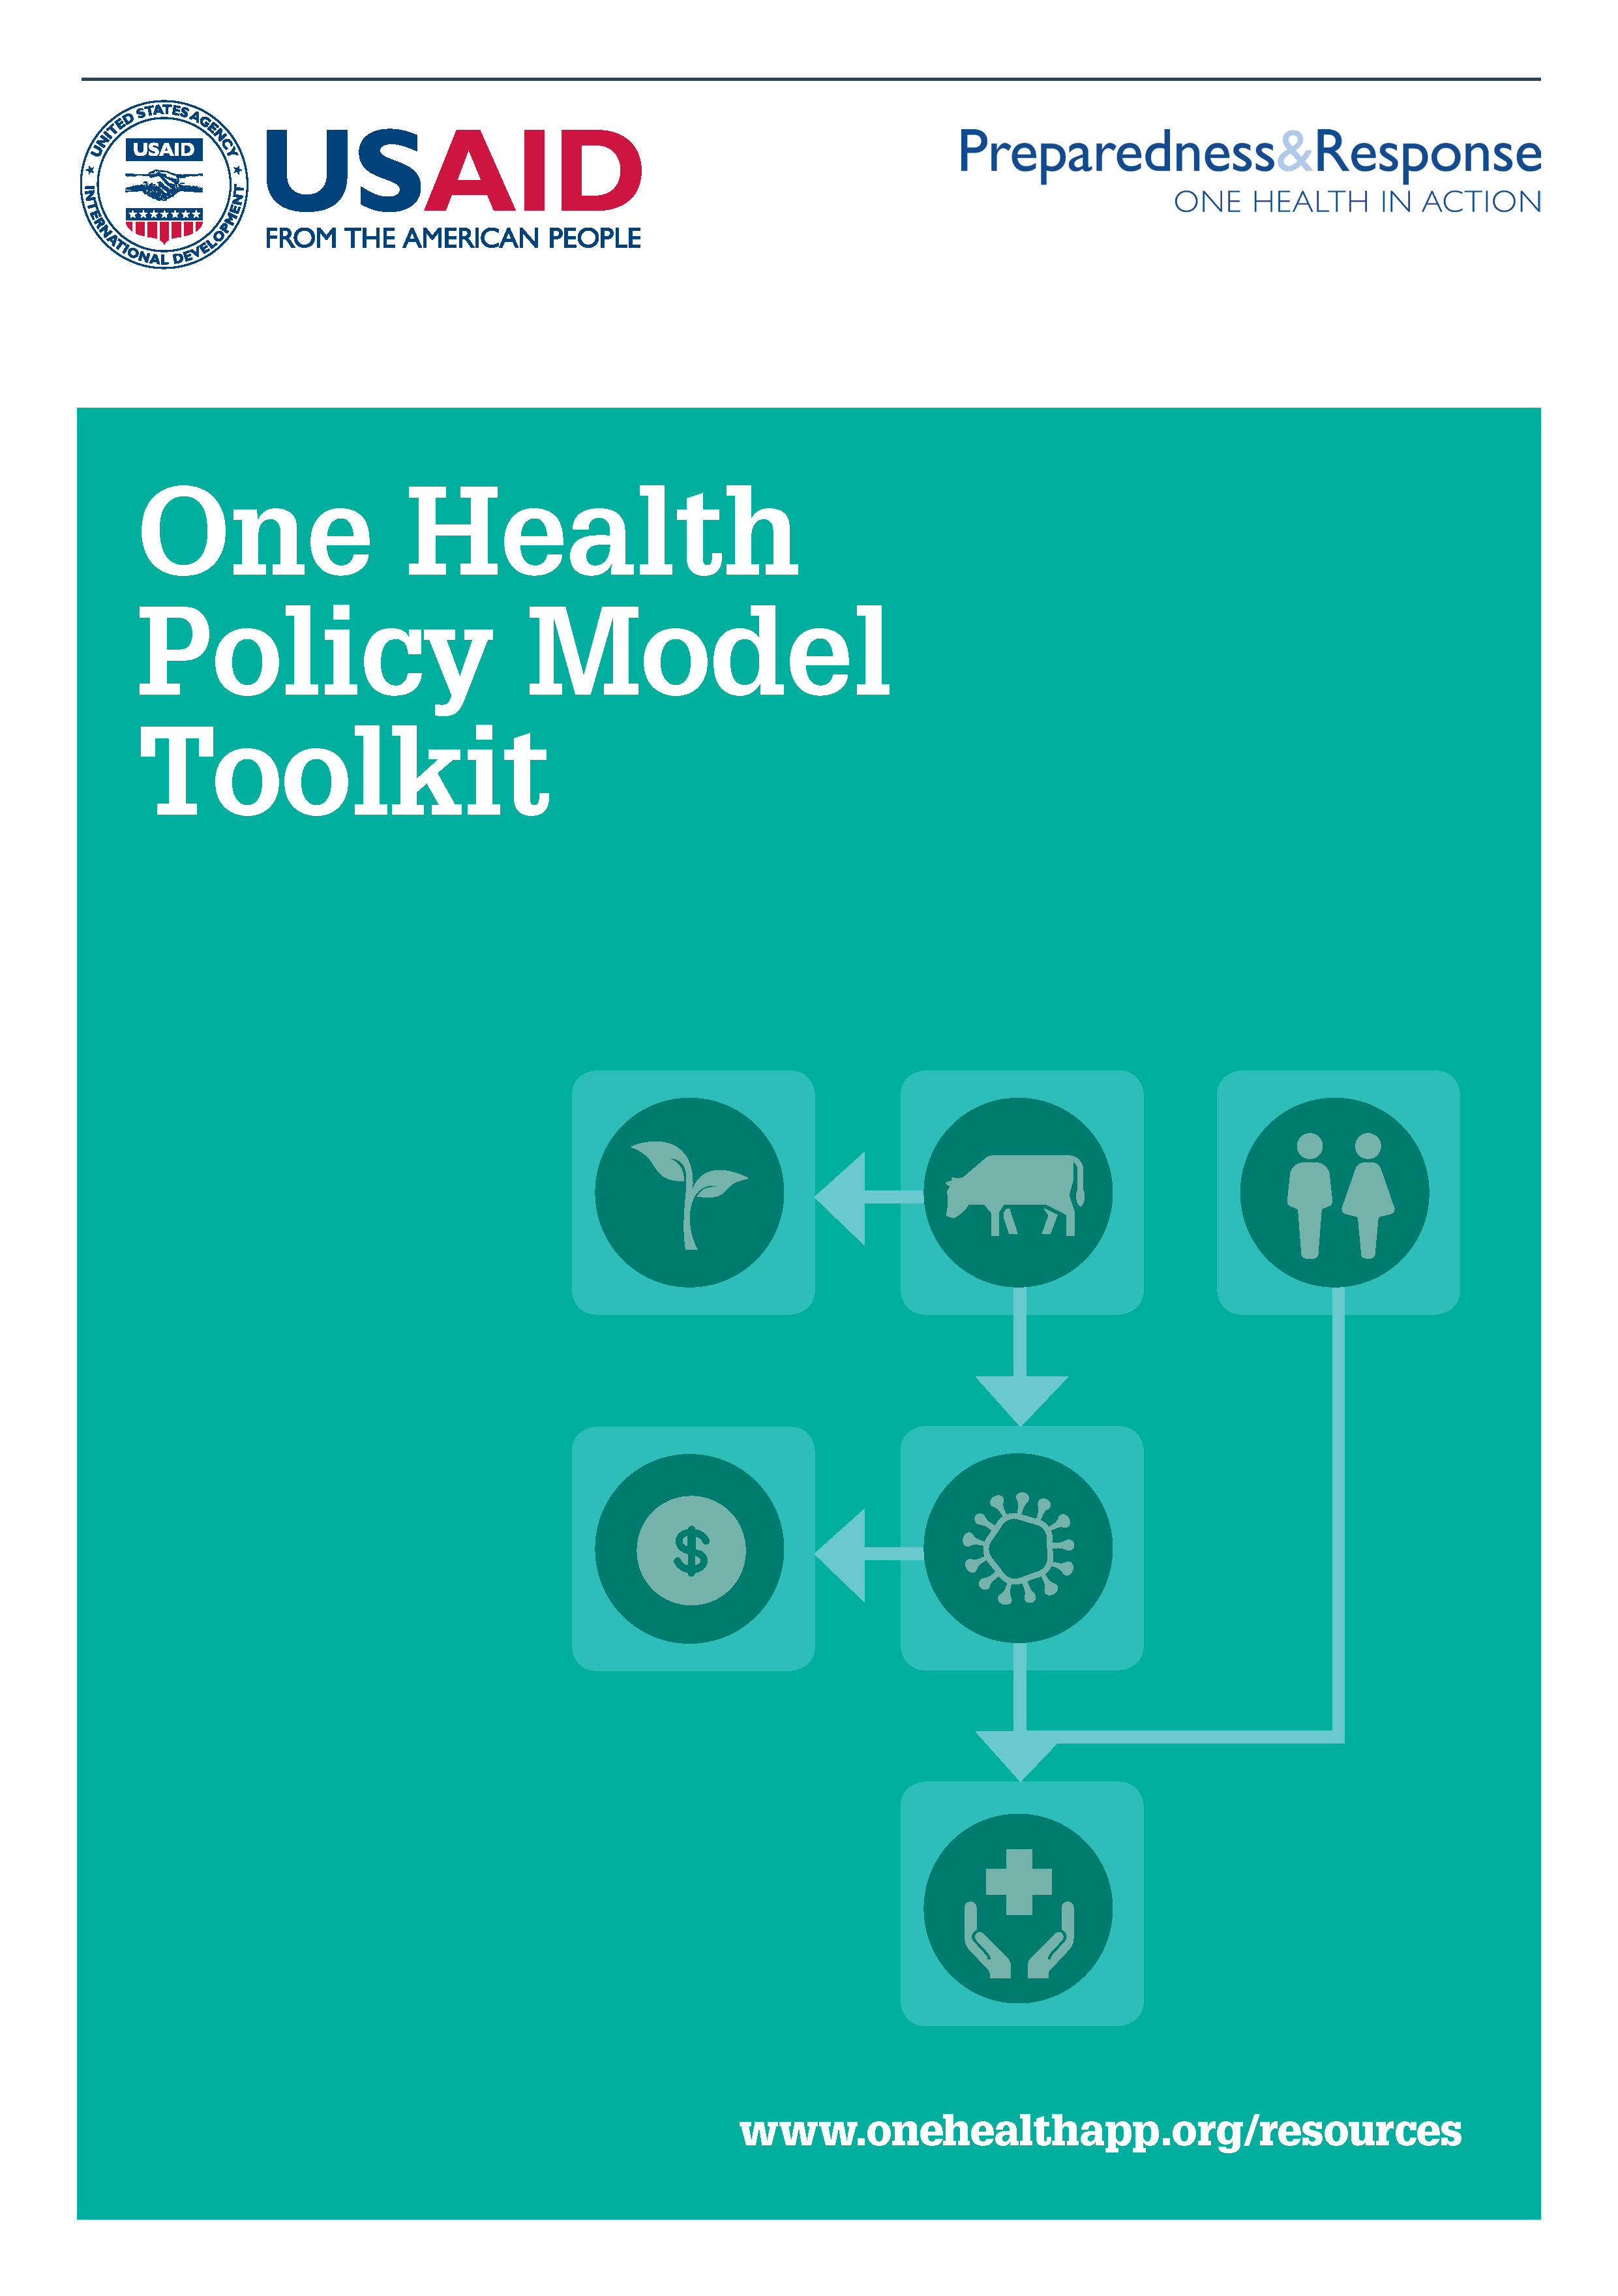 One Health Policy Model Toolkit